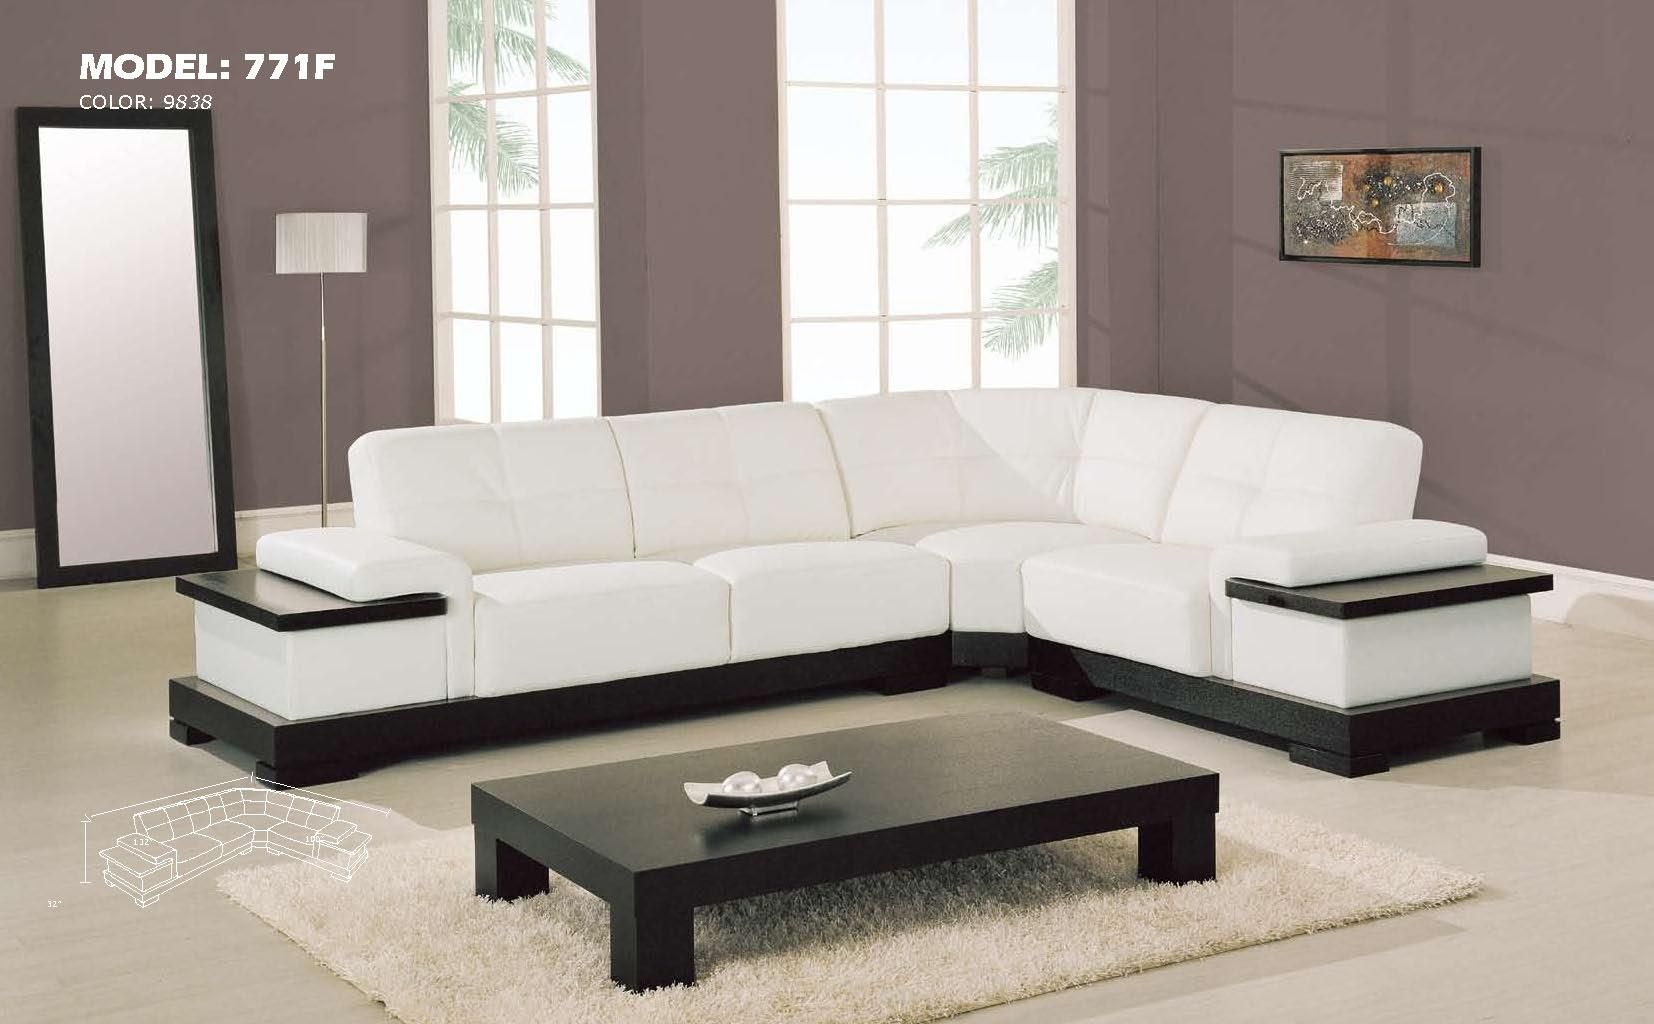 Modern Furniture For Living Room Contemporary Sectional L Shaped Sofa Design Ideas For Living Room